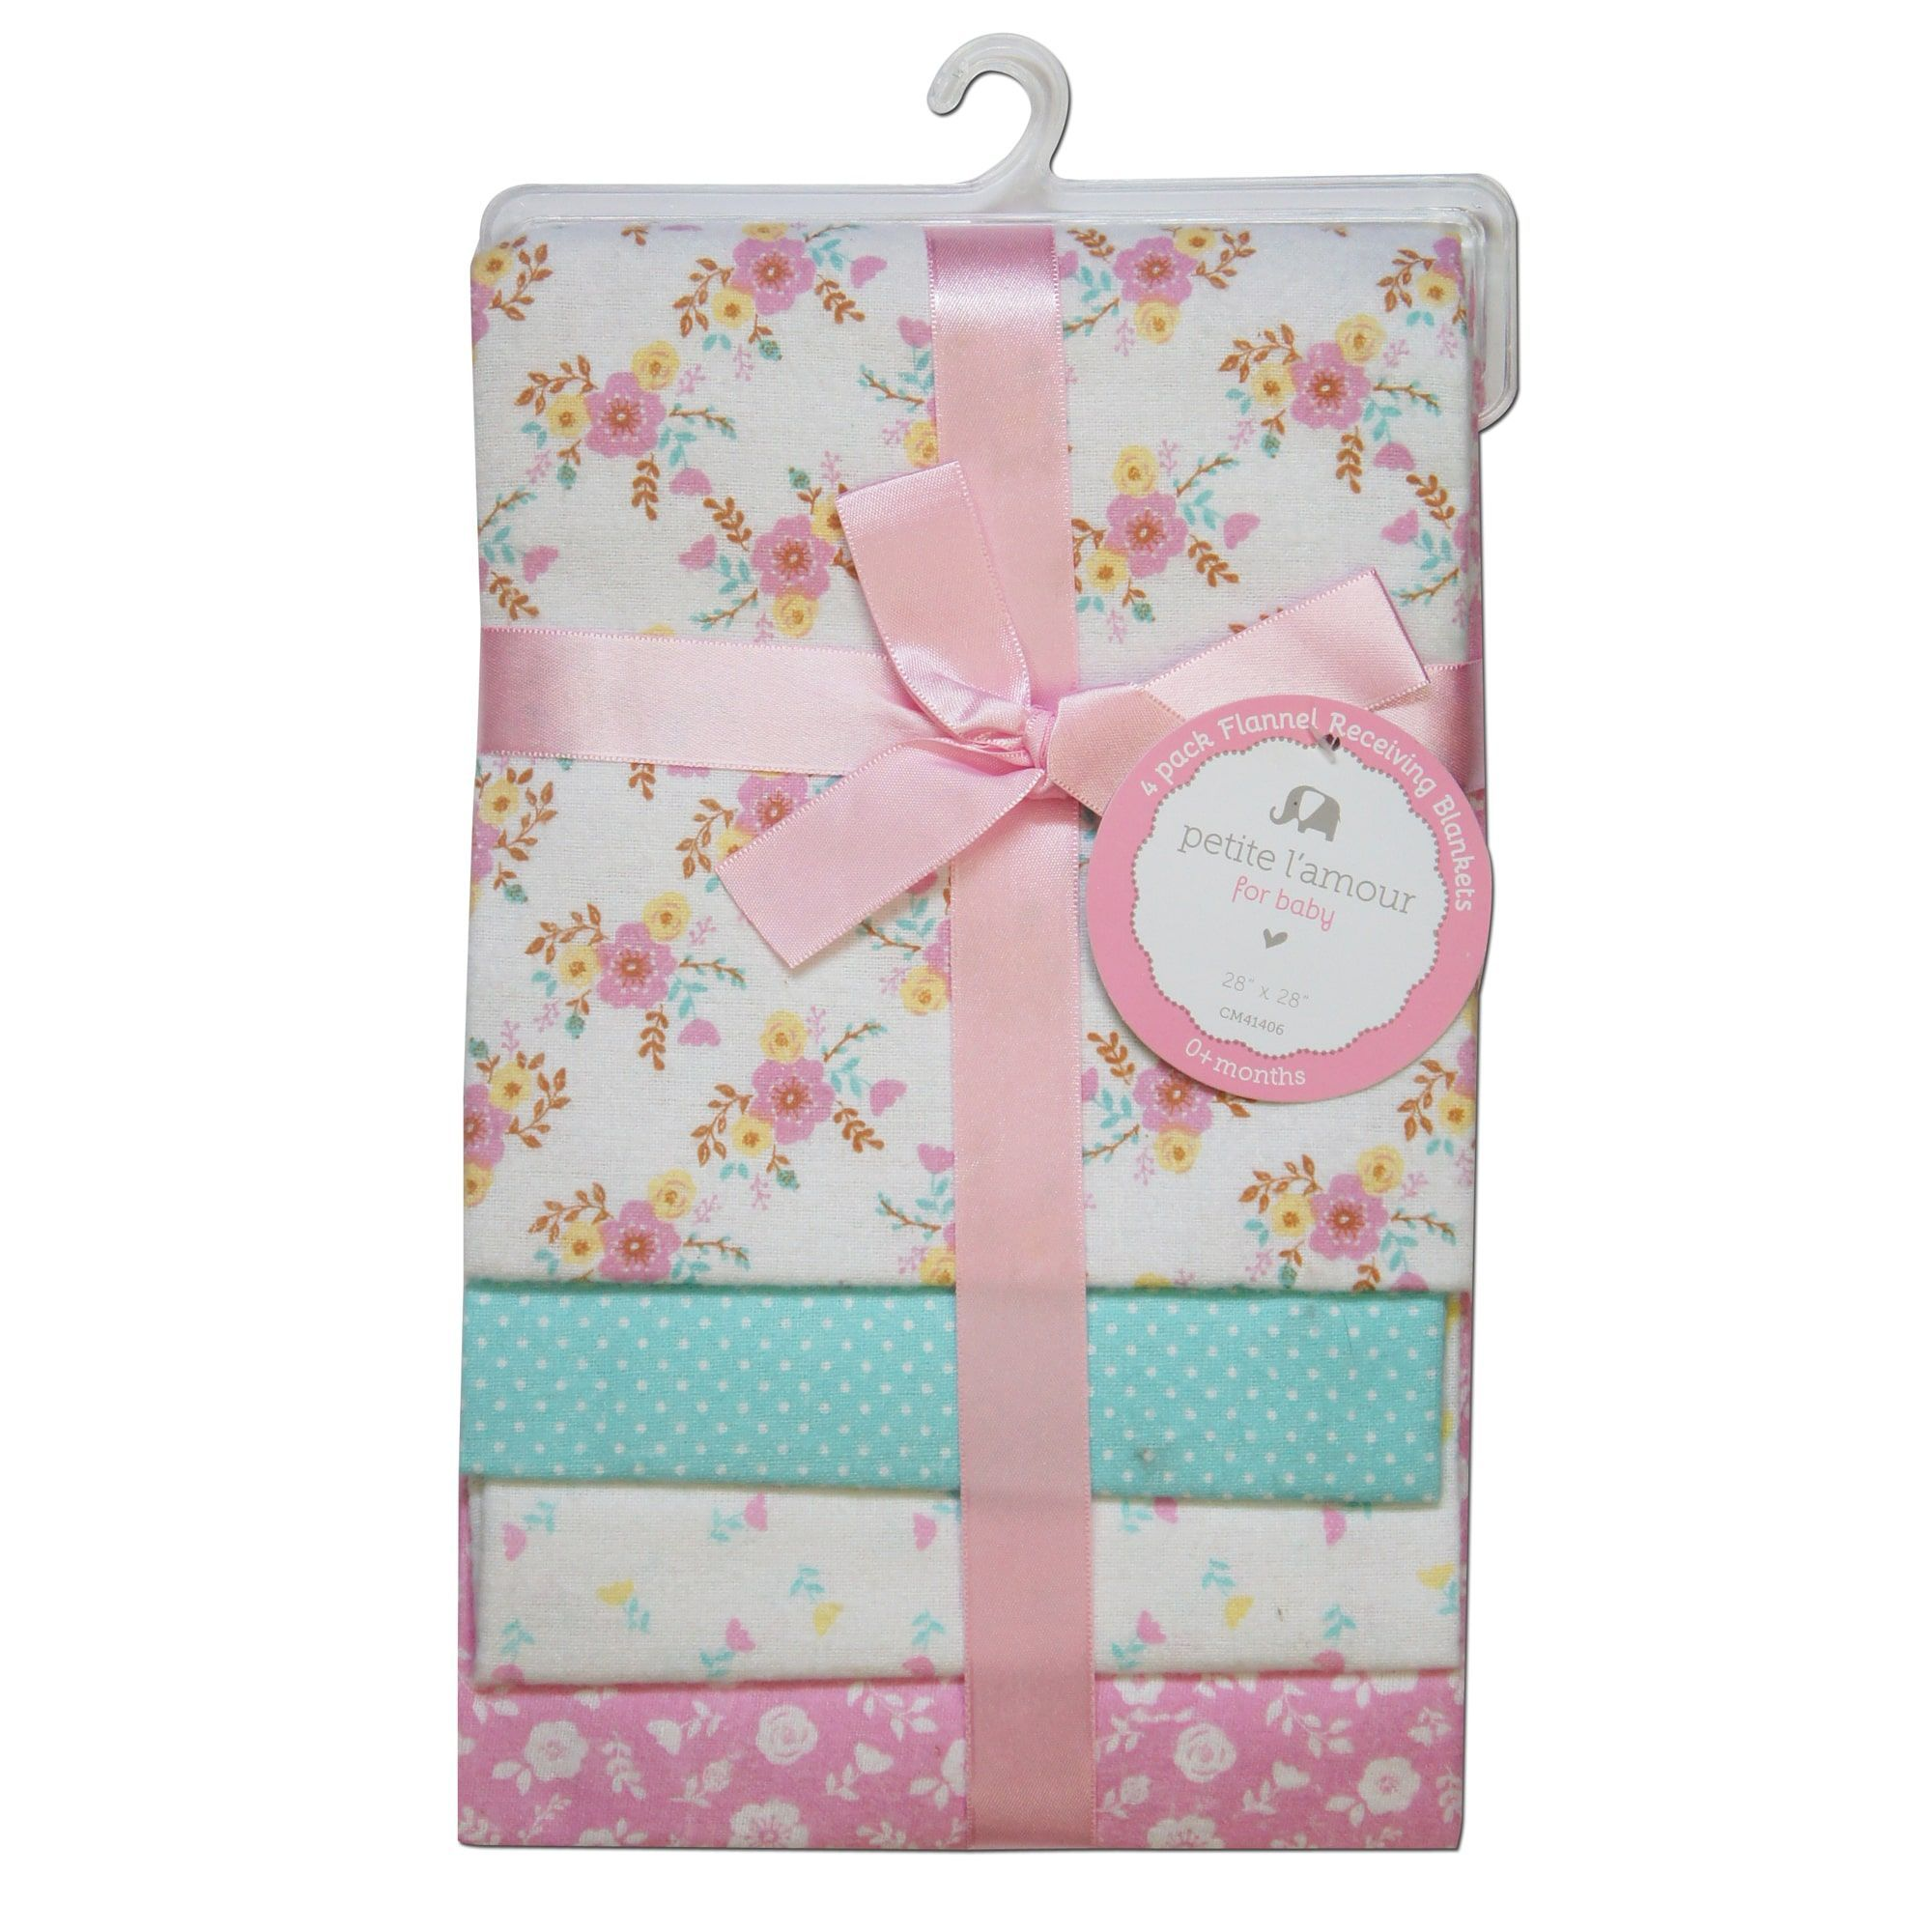 Swaddle Blankets Target New Petite L'amour Receiving Blankets Baby Girls  Products  Pinterest Design Ideas